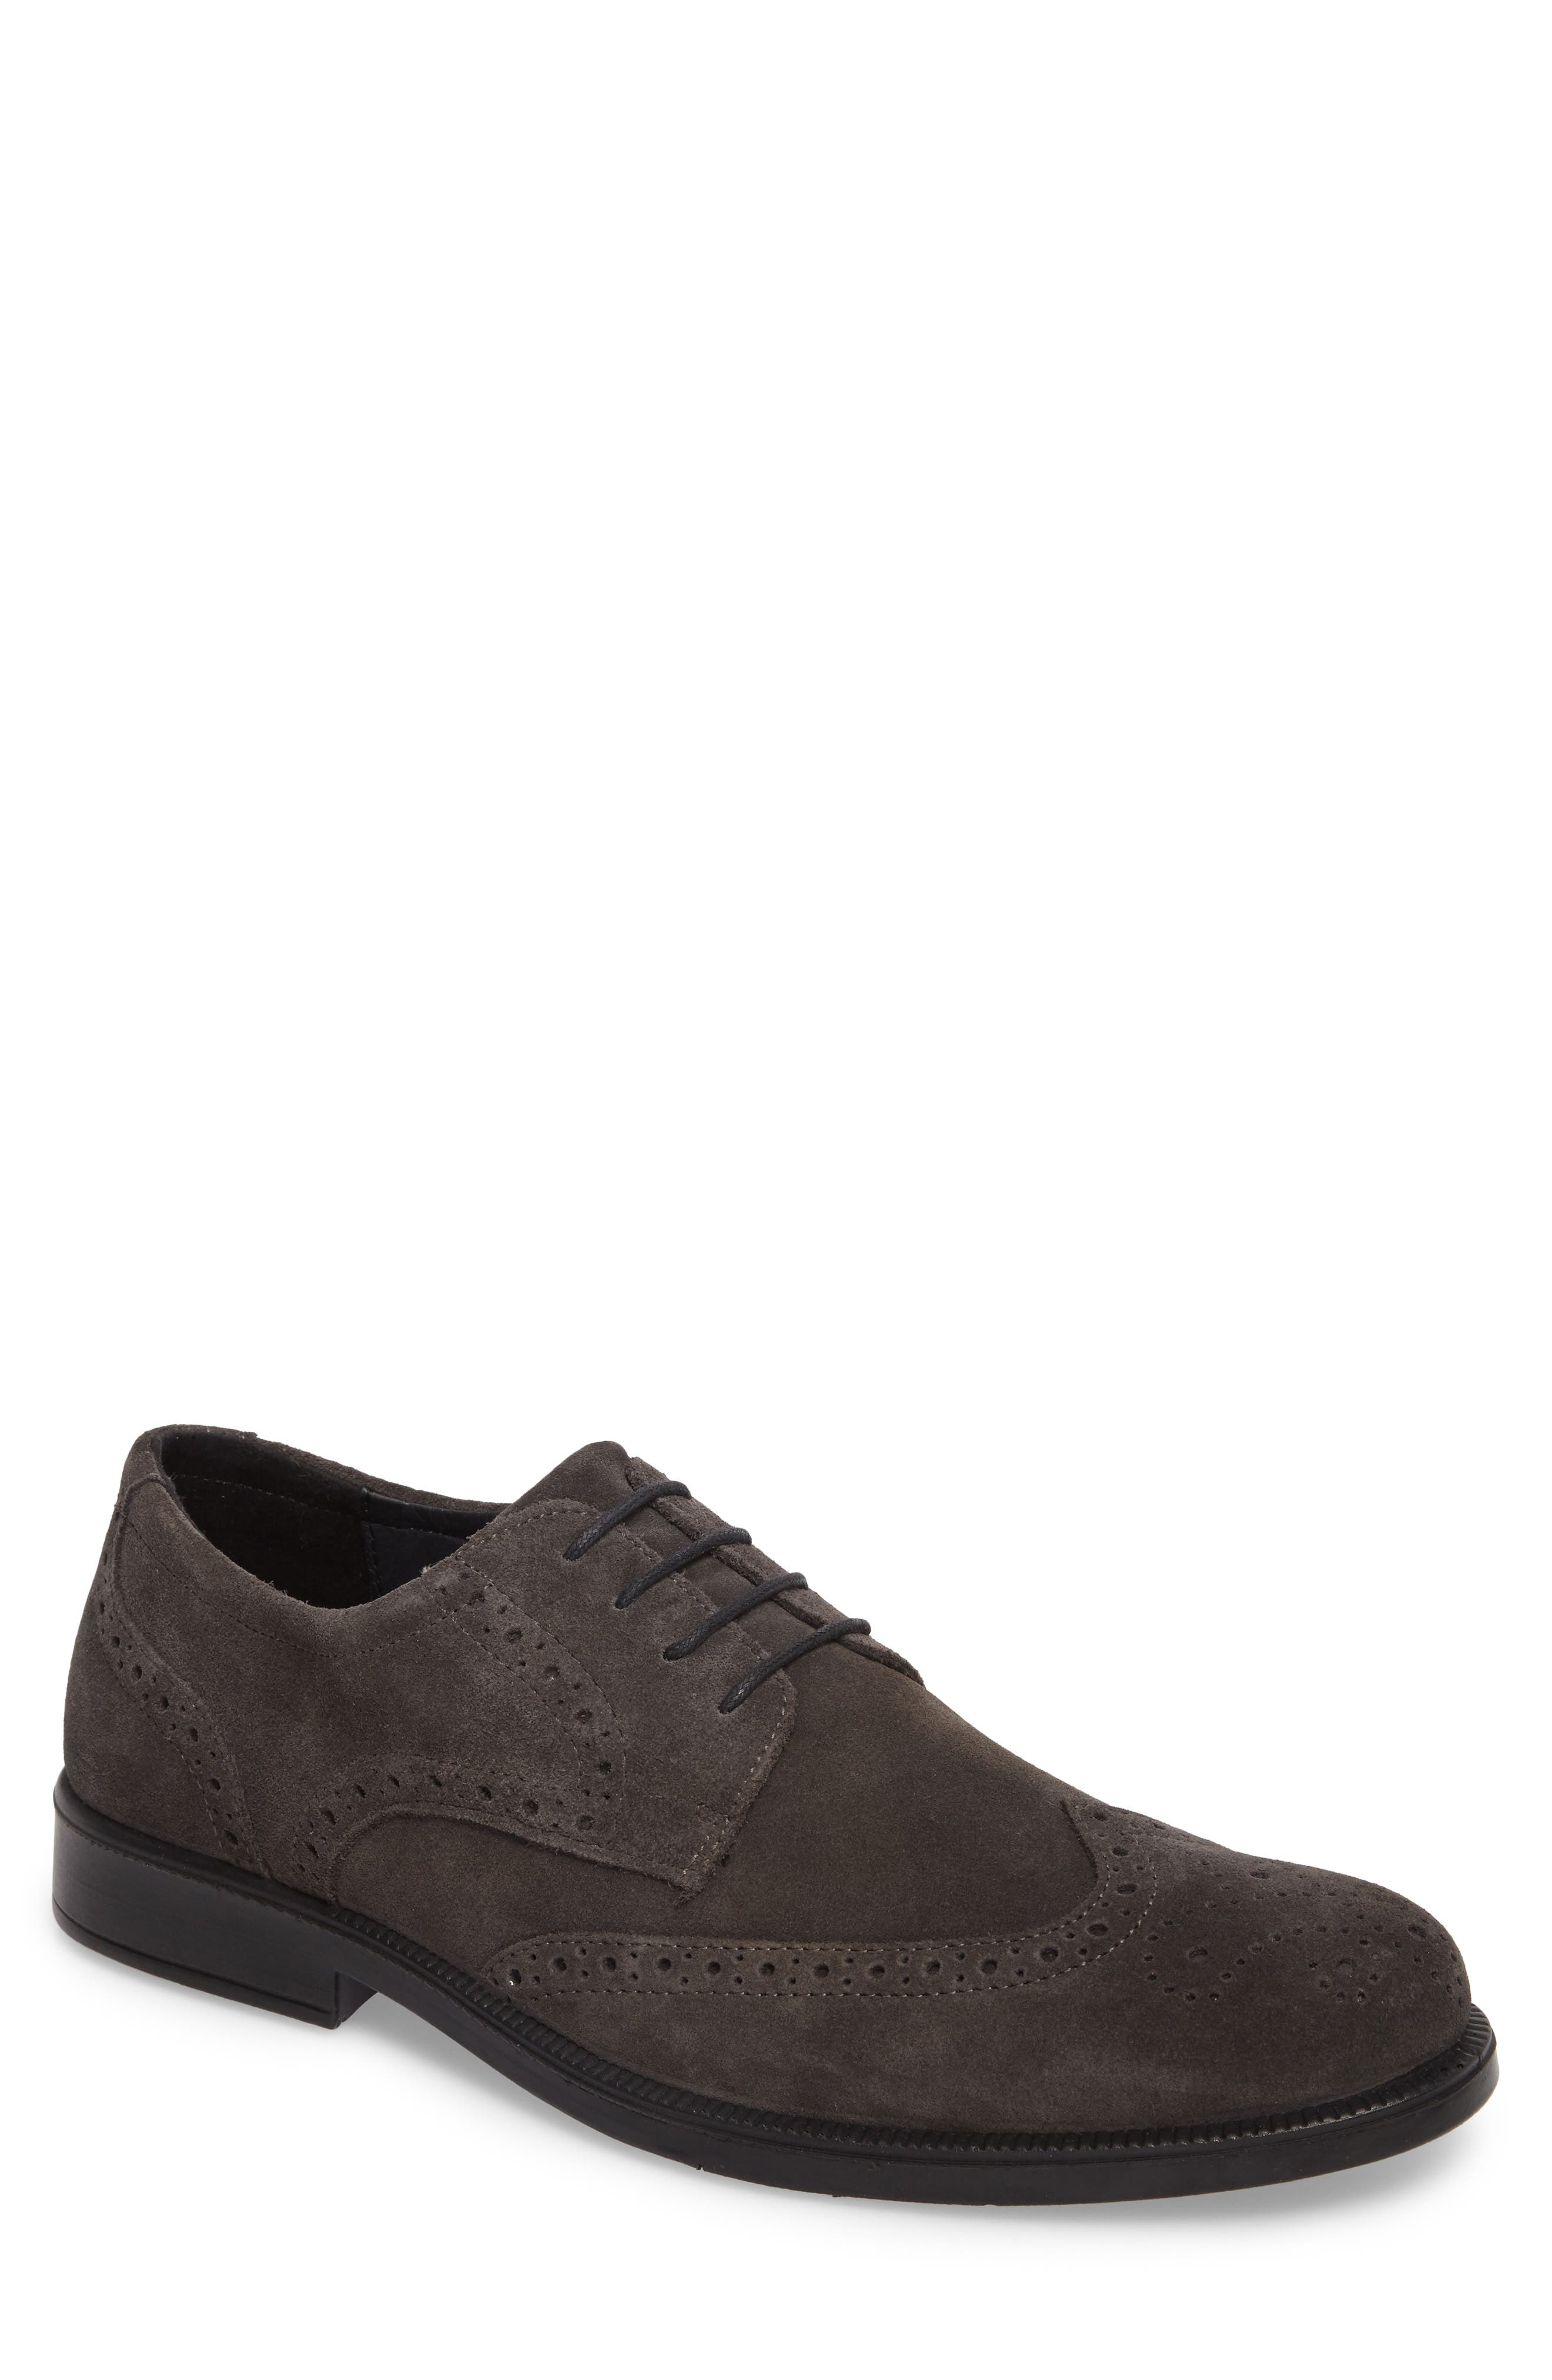 Trent Wingtip,                             Main thumbnail 1, color,                             Grey Suede